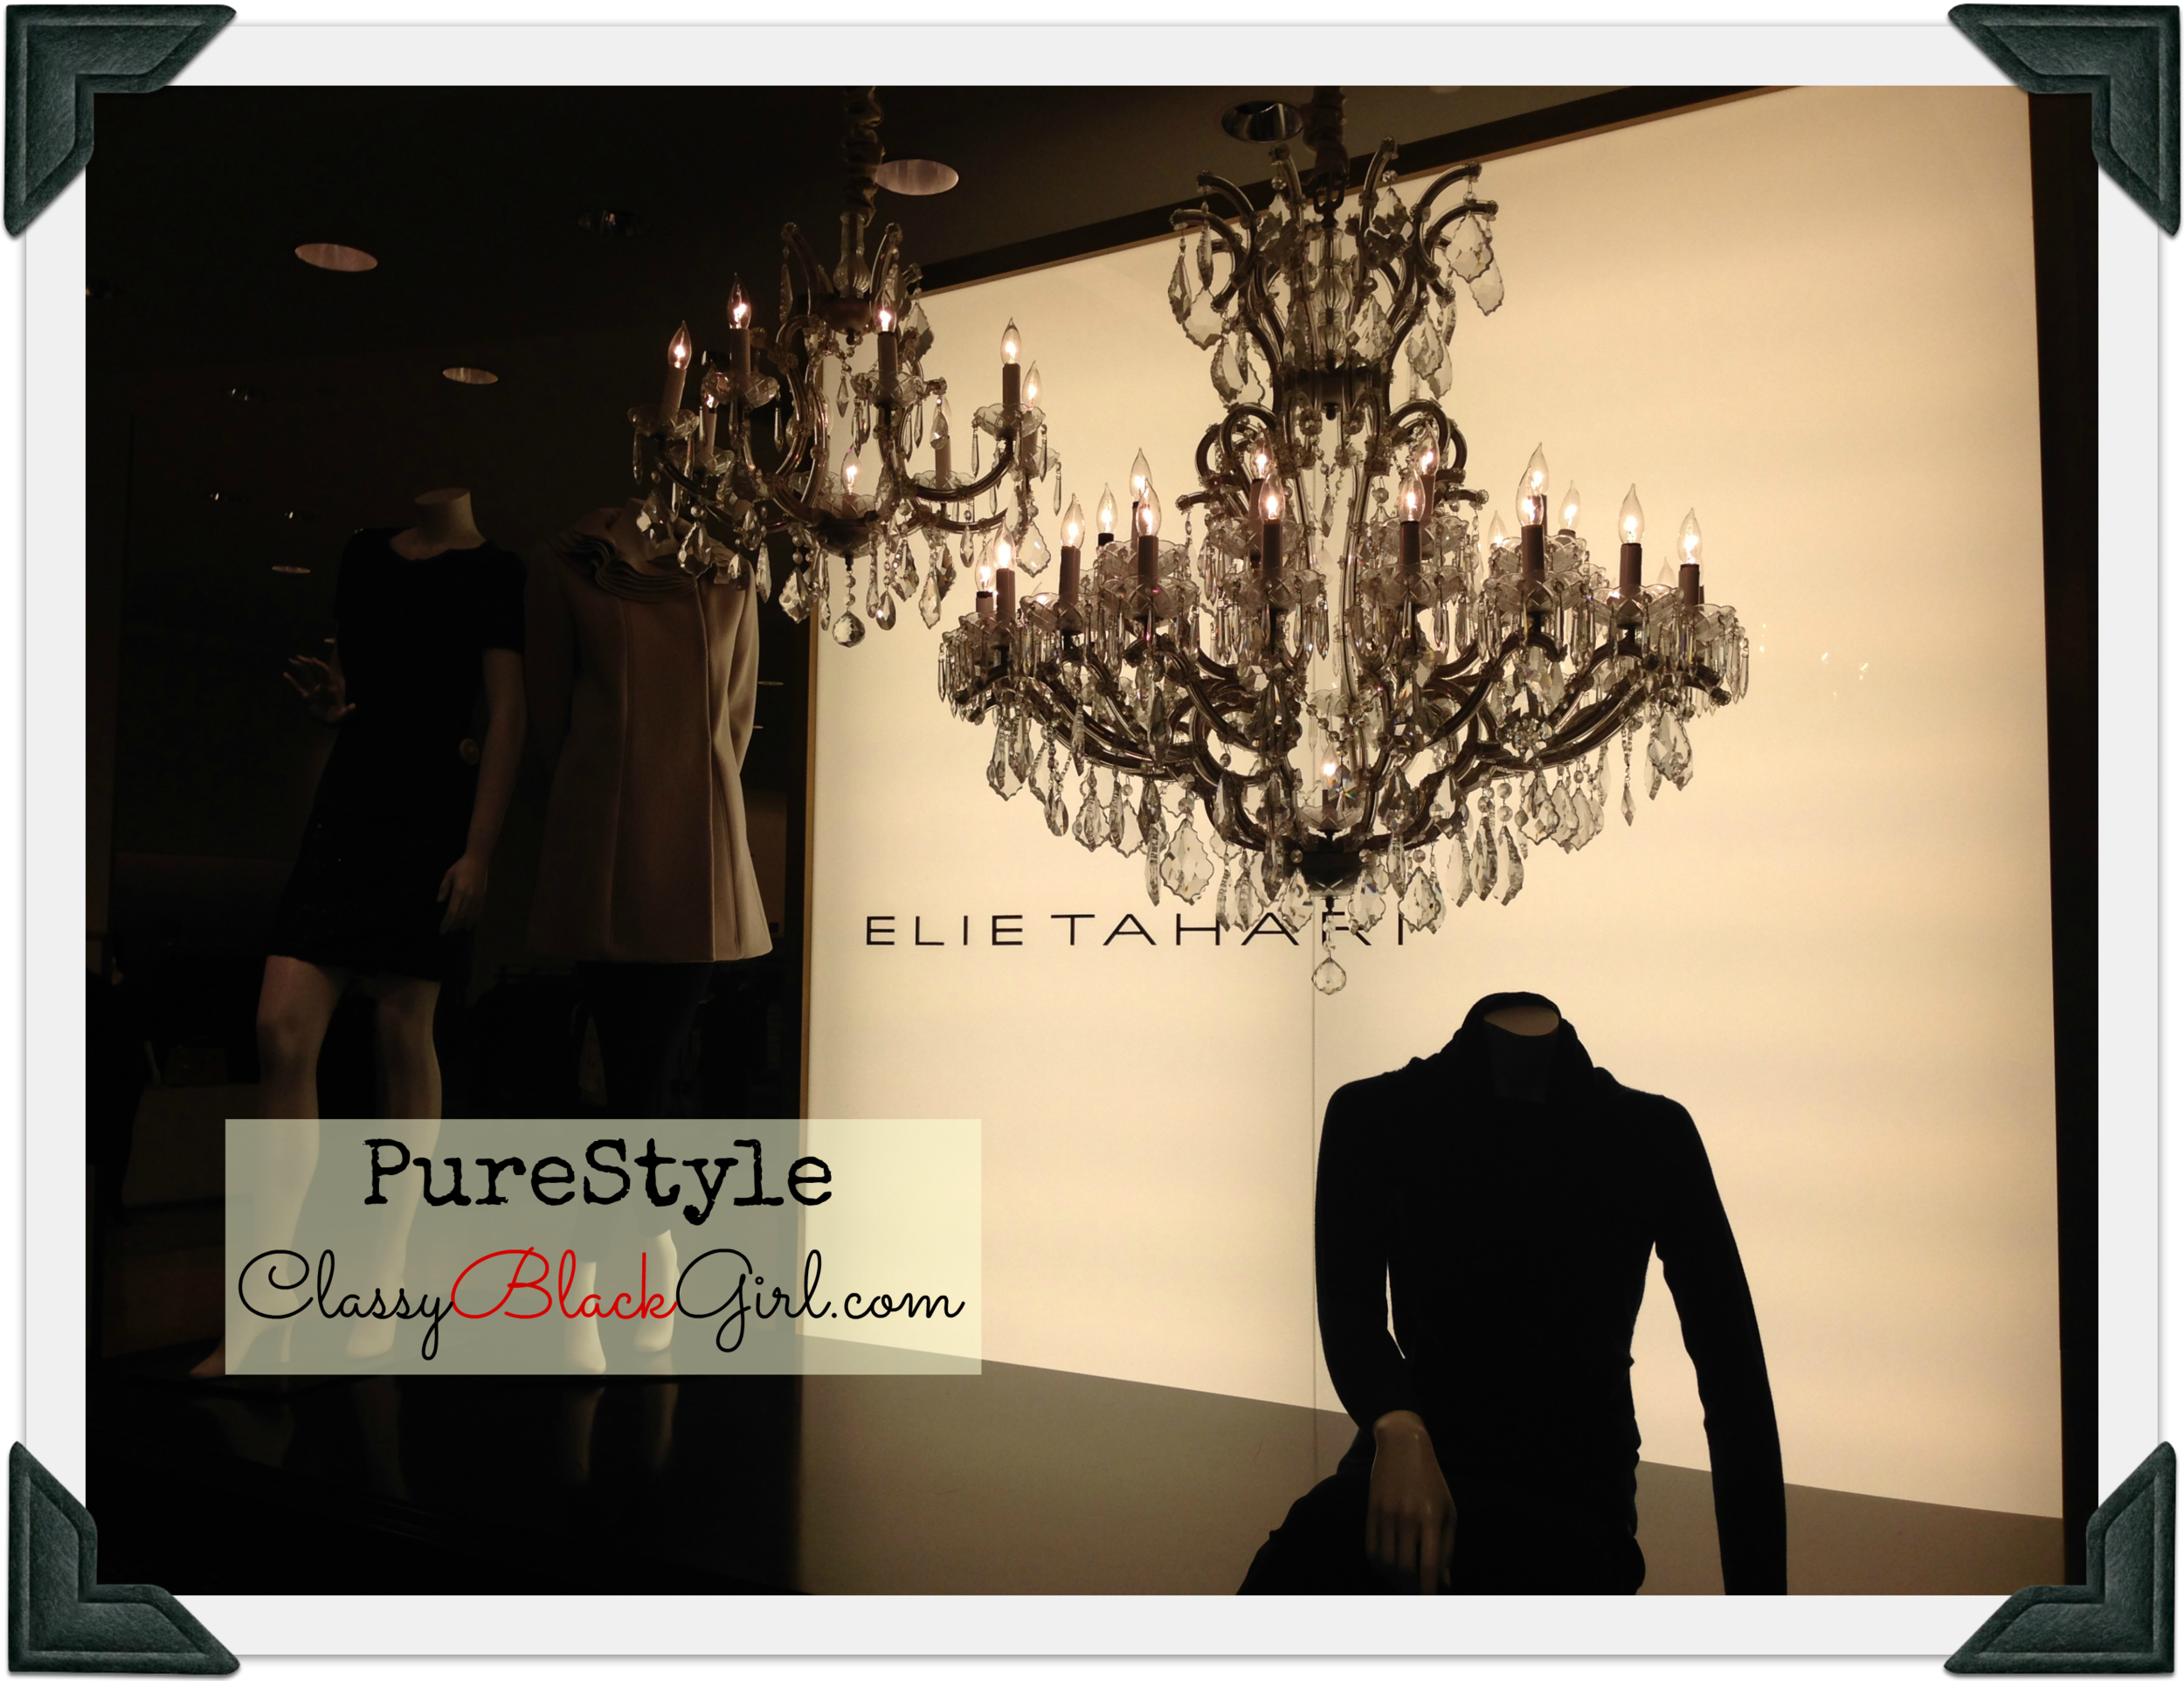 Pure Style Chandelier Elie Tahari Classy Black Girl ClassyBlackGirl.com Sharelle Lowery